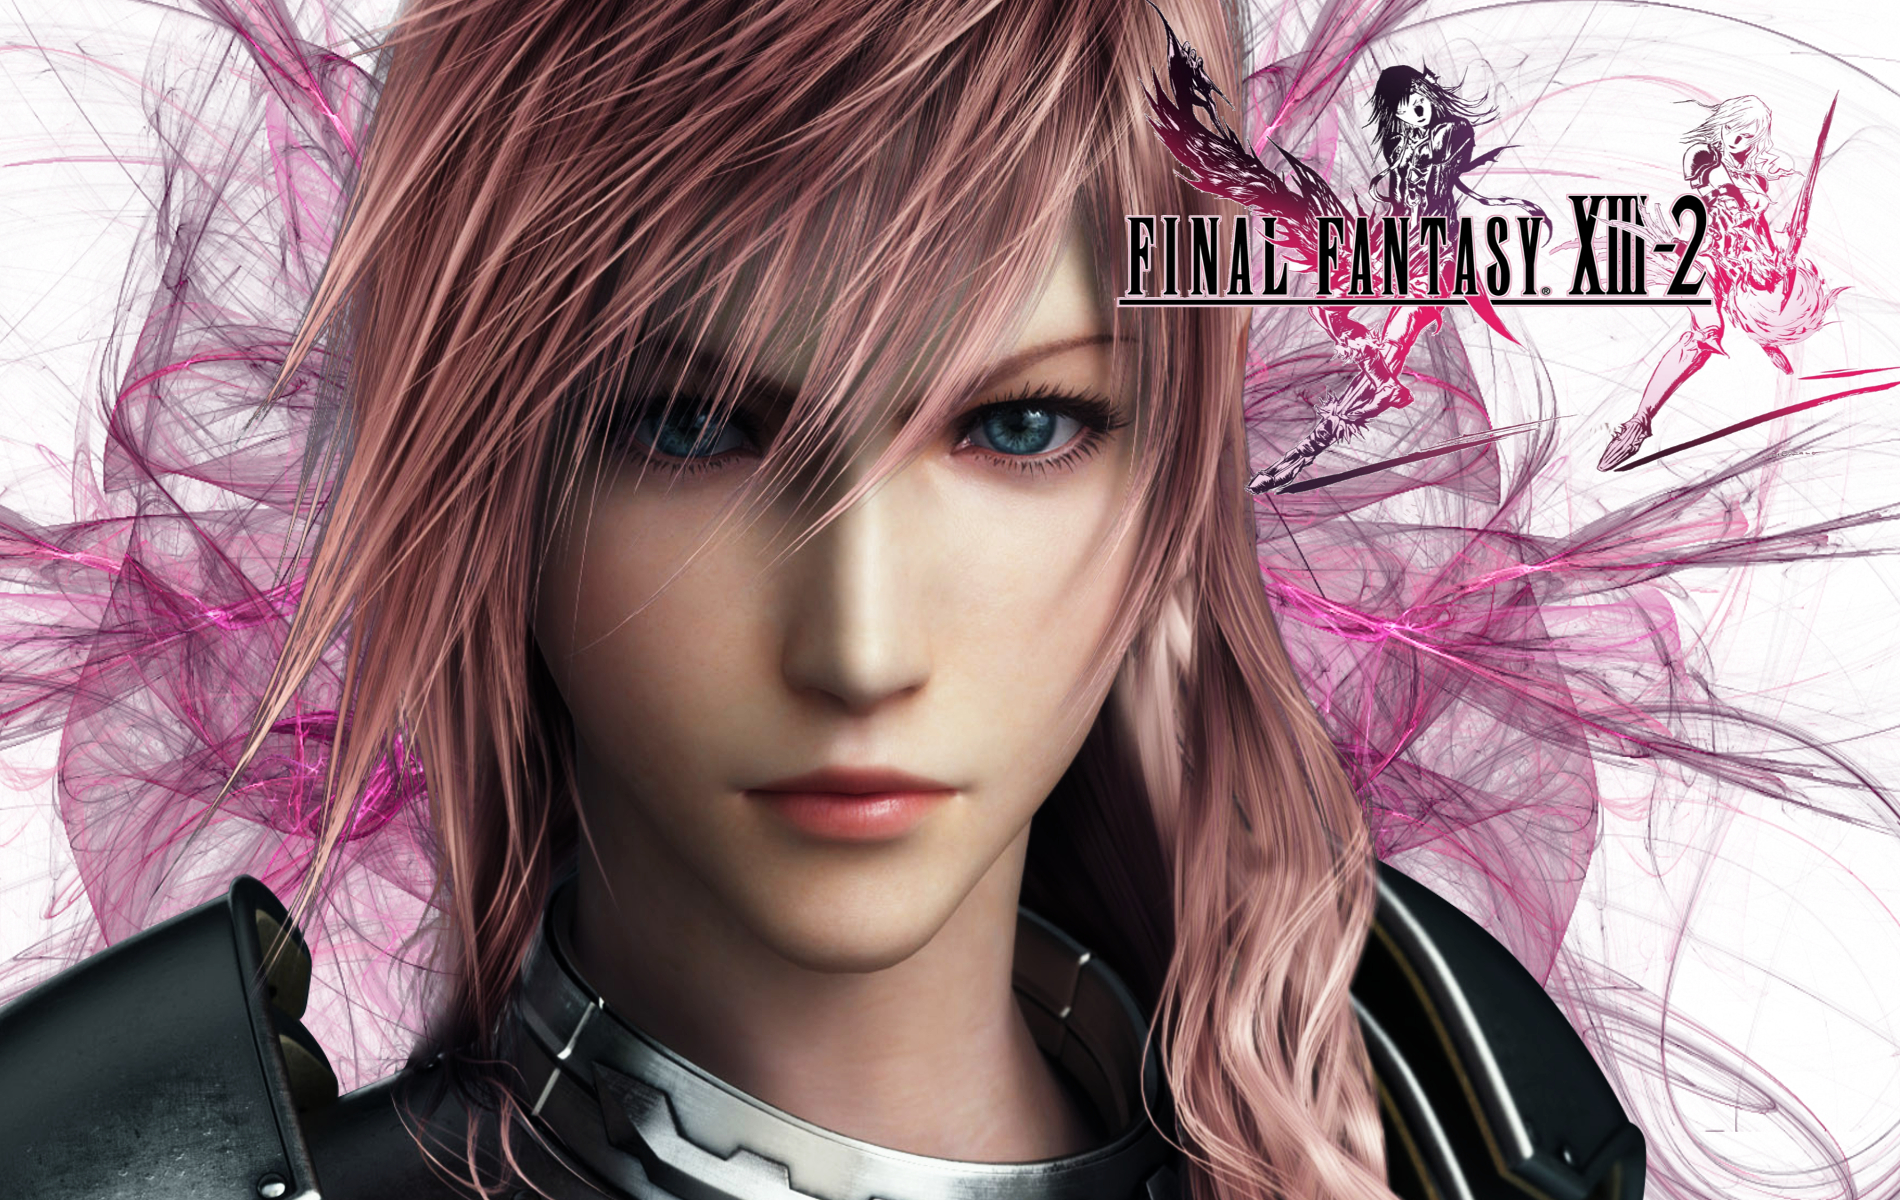 Final fantasy xiii2 lightning by viciousjosh on deviantart final fantasy xiii2 lightning by viciousjosh voltagebd Choice Image